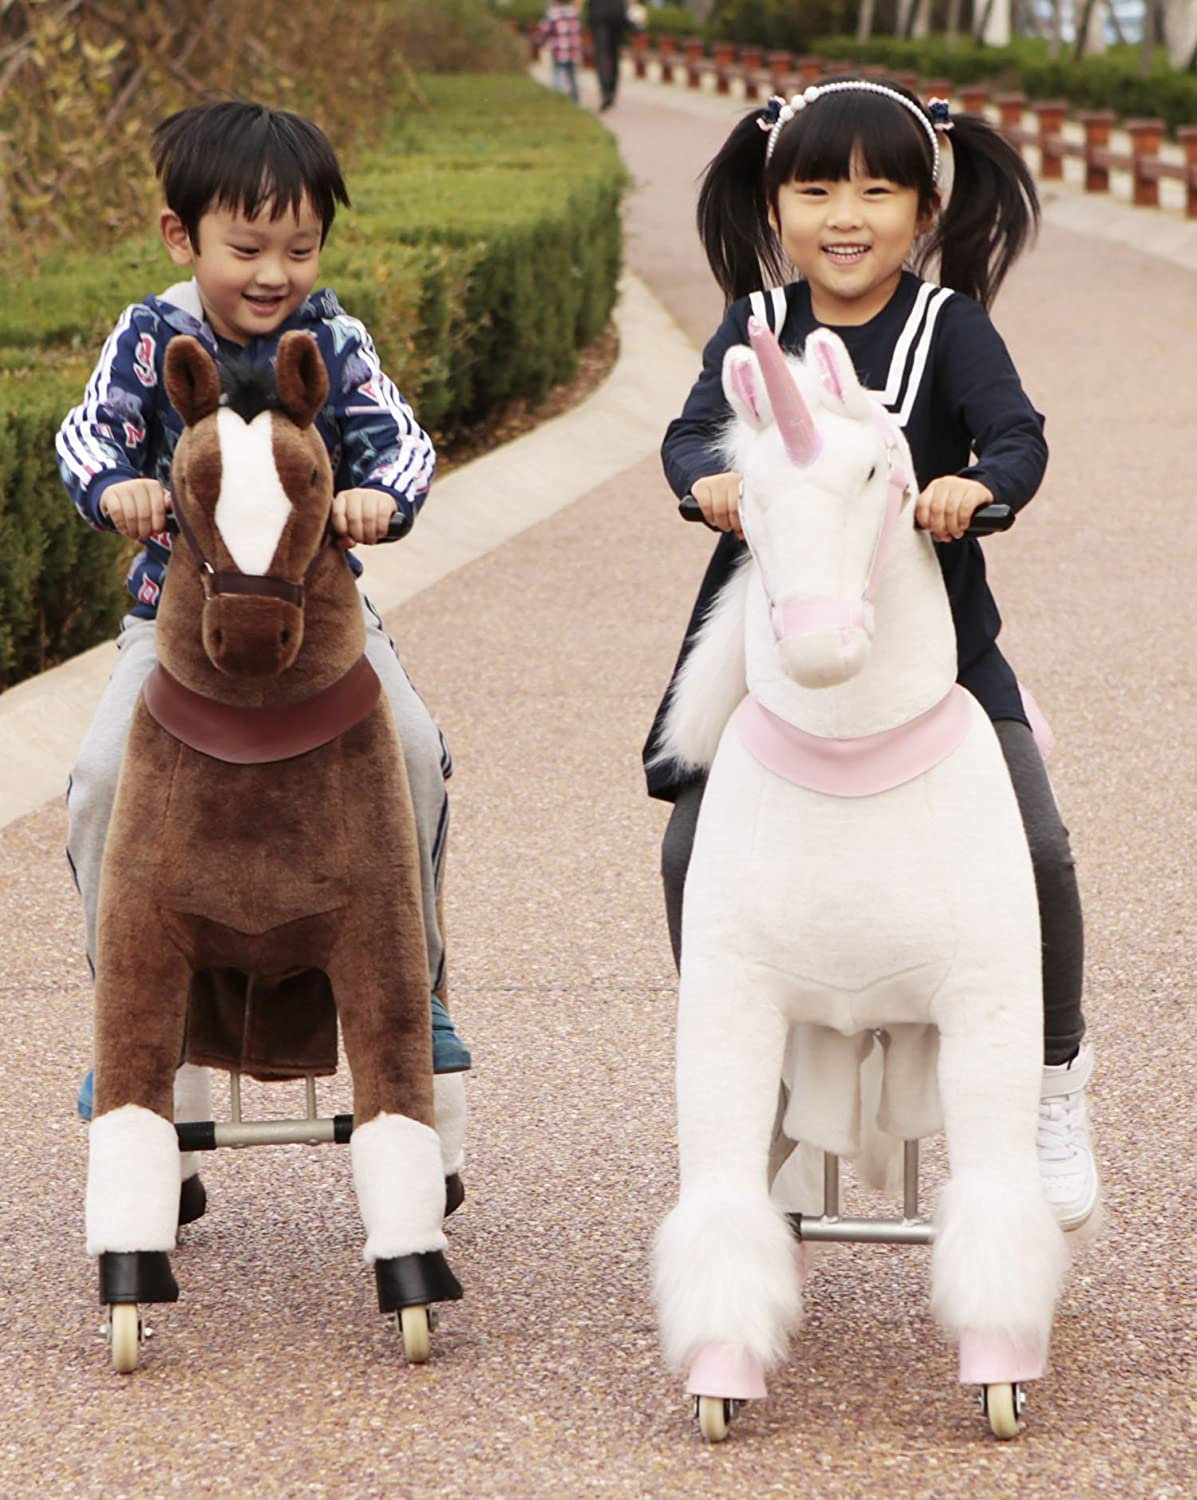 Mechanical Ride on Unicorn Simulated Horse Riding on Toy Ride-on Cycle Toys More Comfortable Riding with Gallop Motion for Kids 5-12 Years